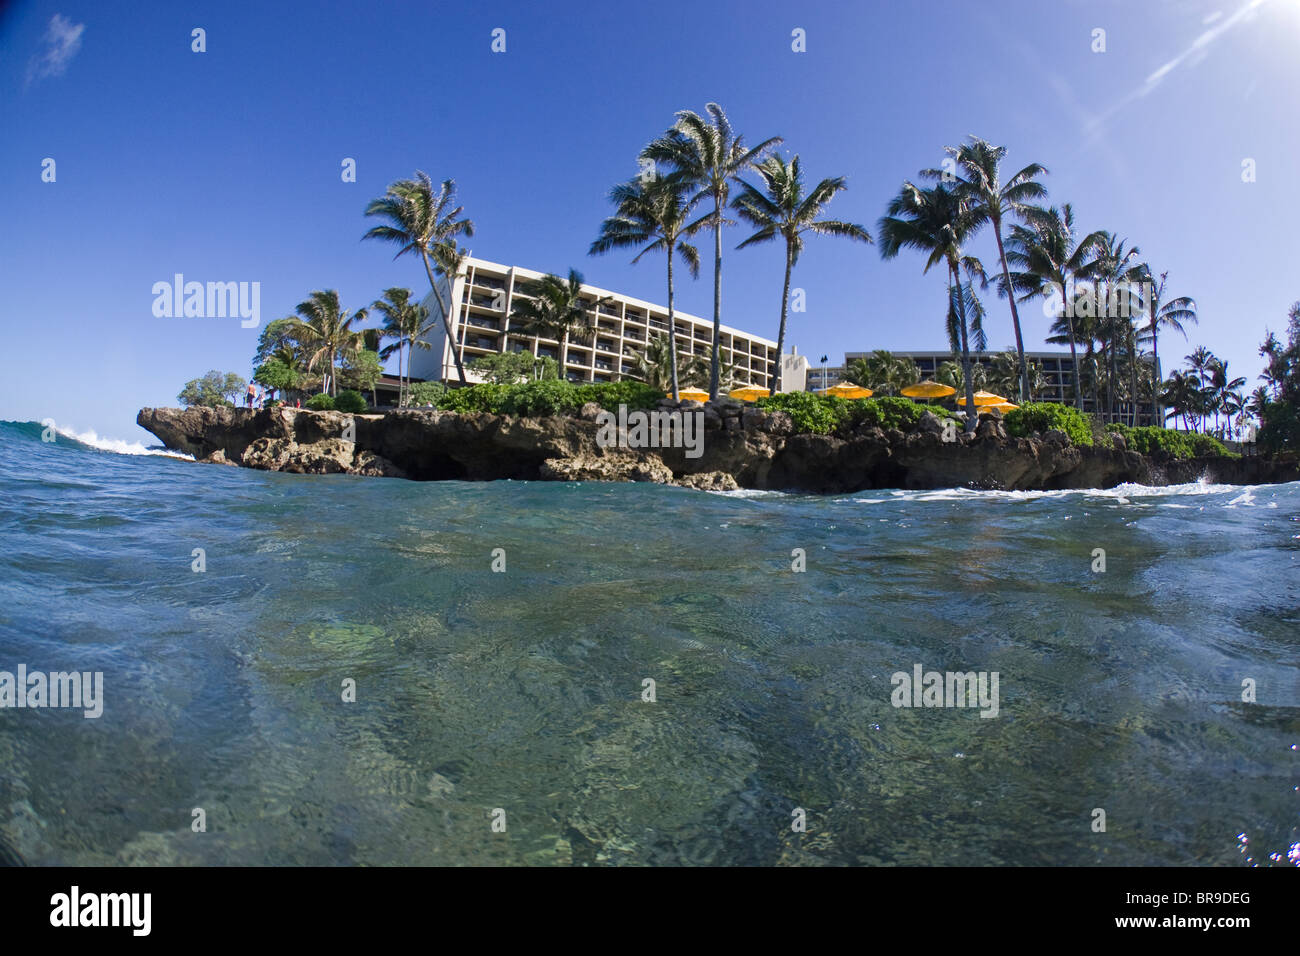 Turtle Bay resort on the north shore of Oahu Hawaii. - Stock Image